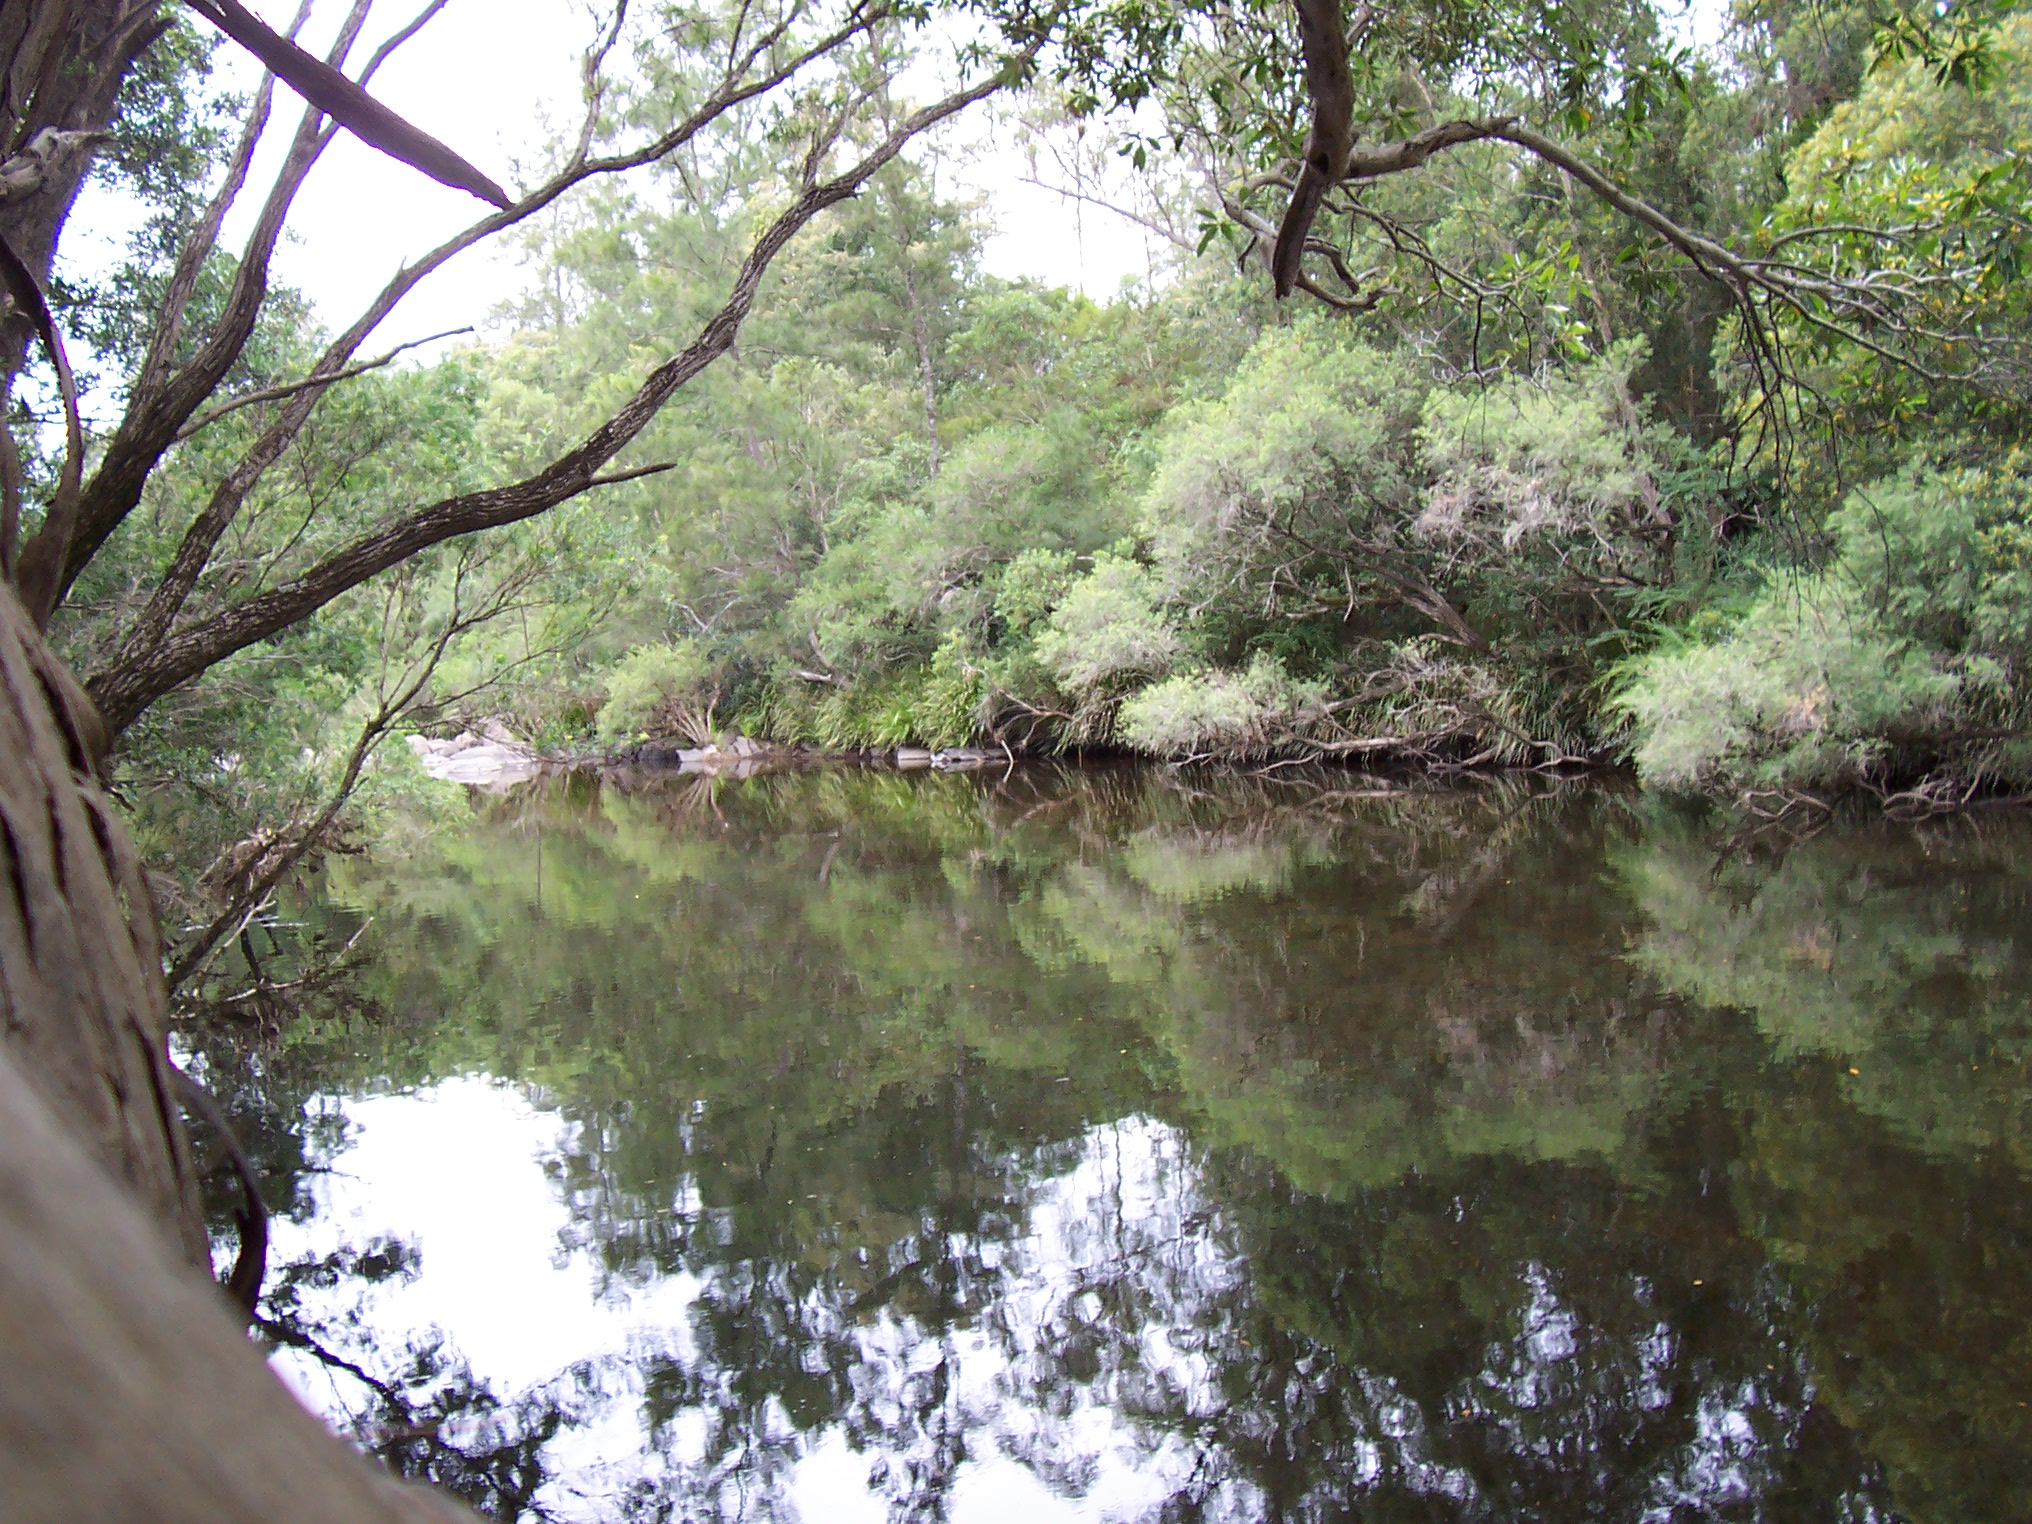 File:Australian bush river reflection.jpg - Wikipedia, the free ...